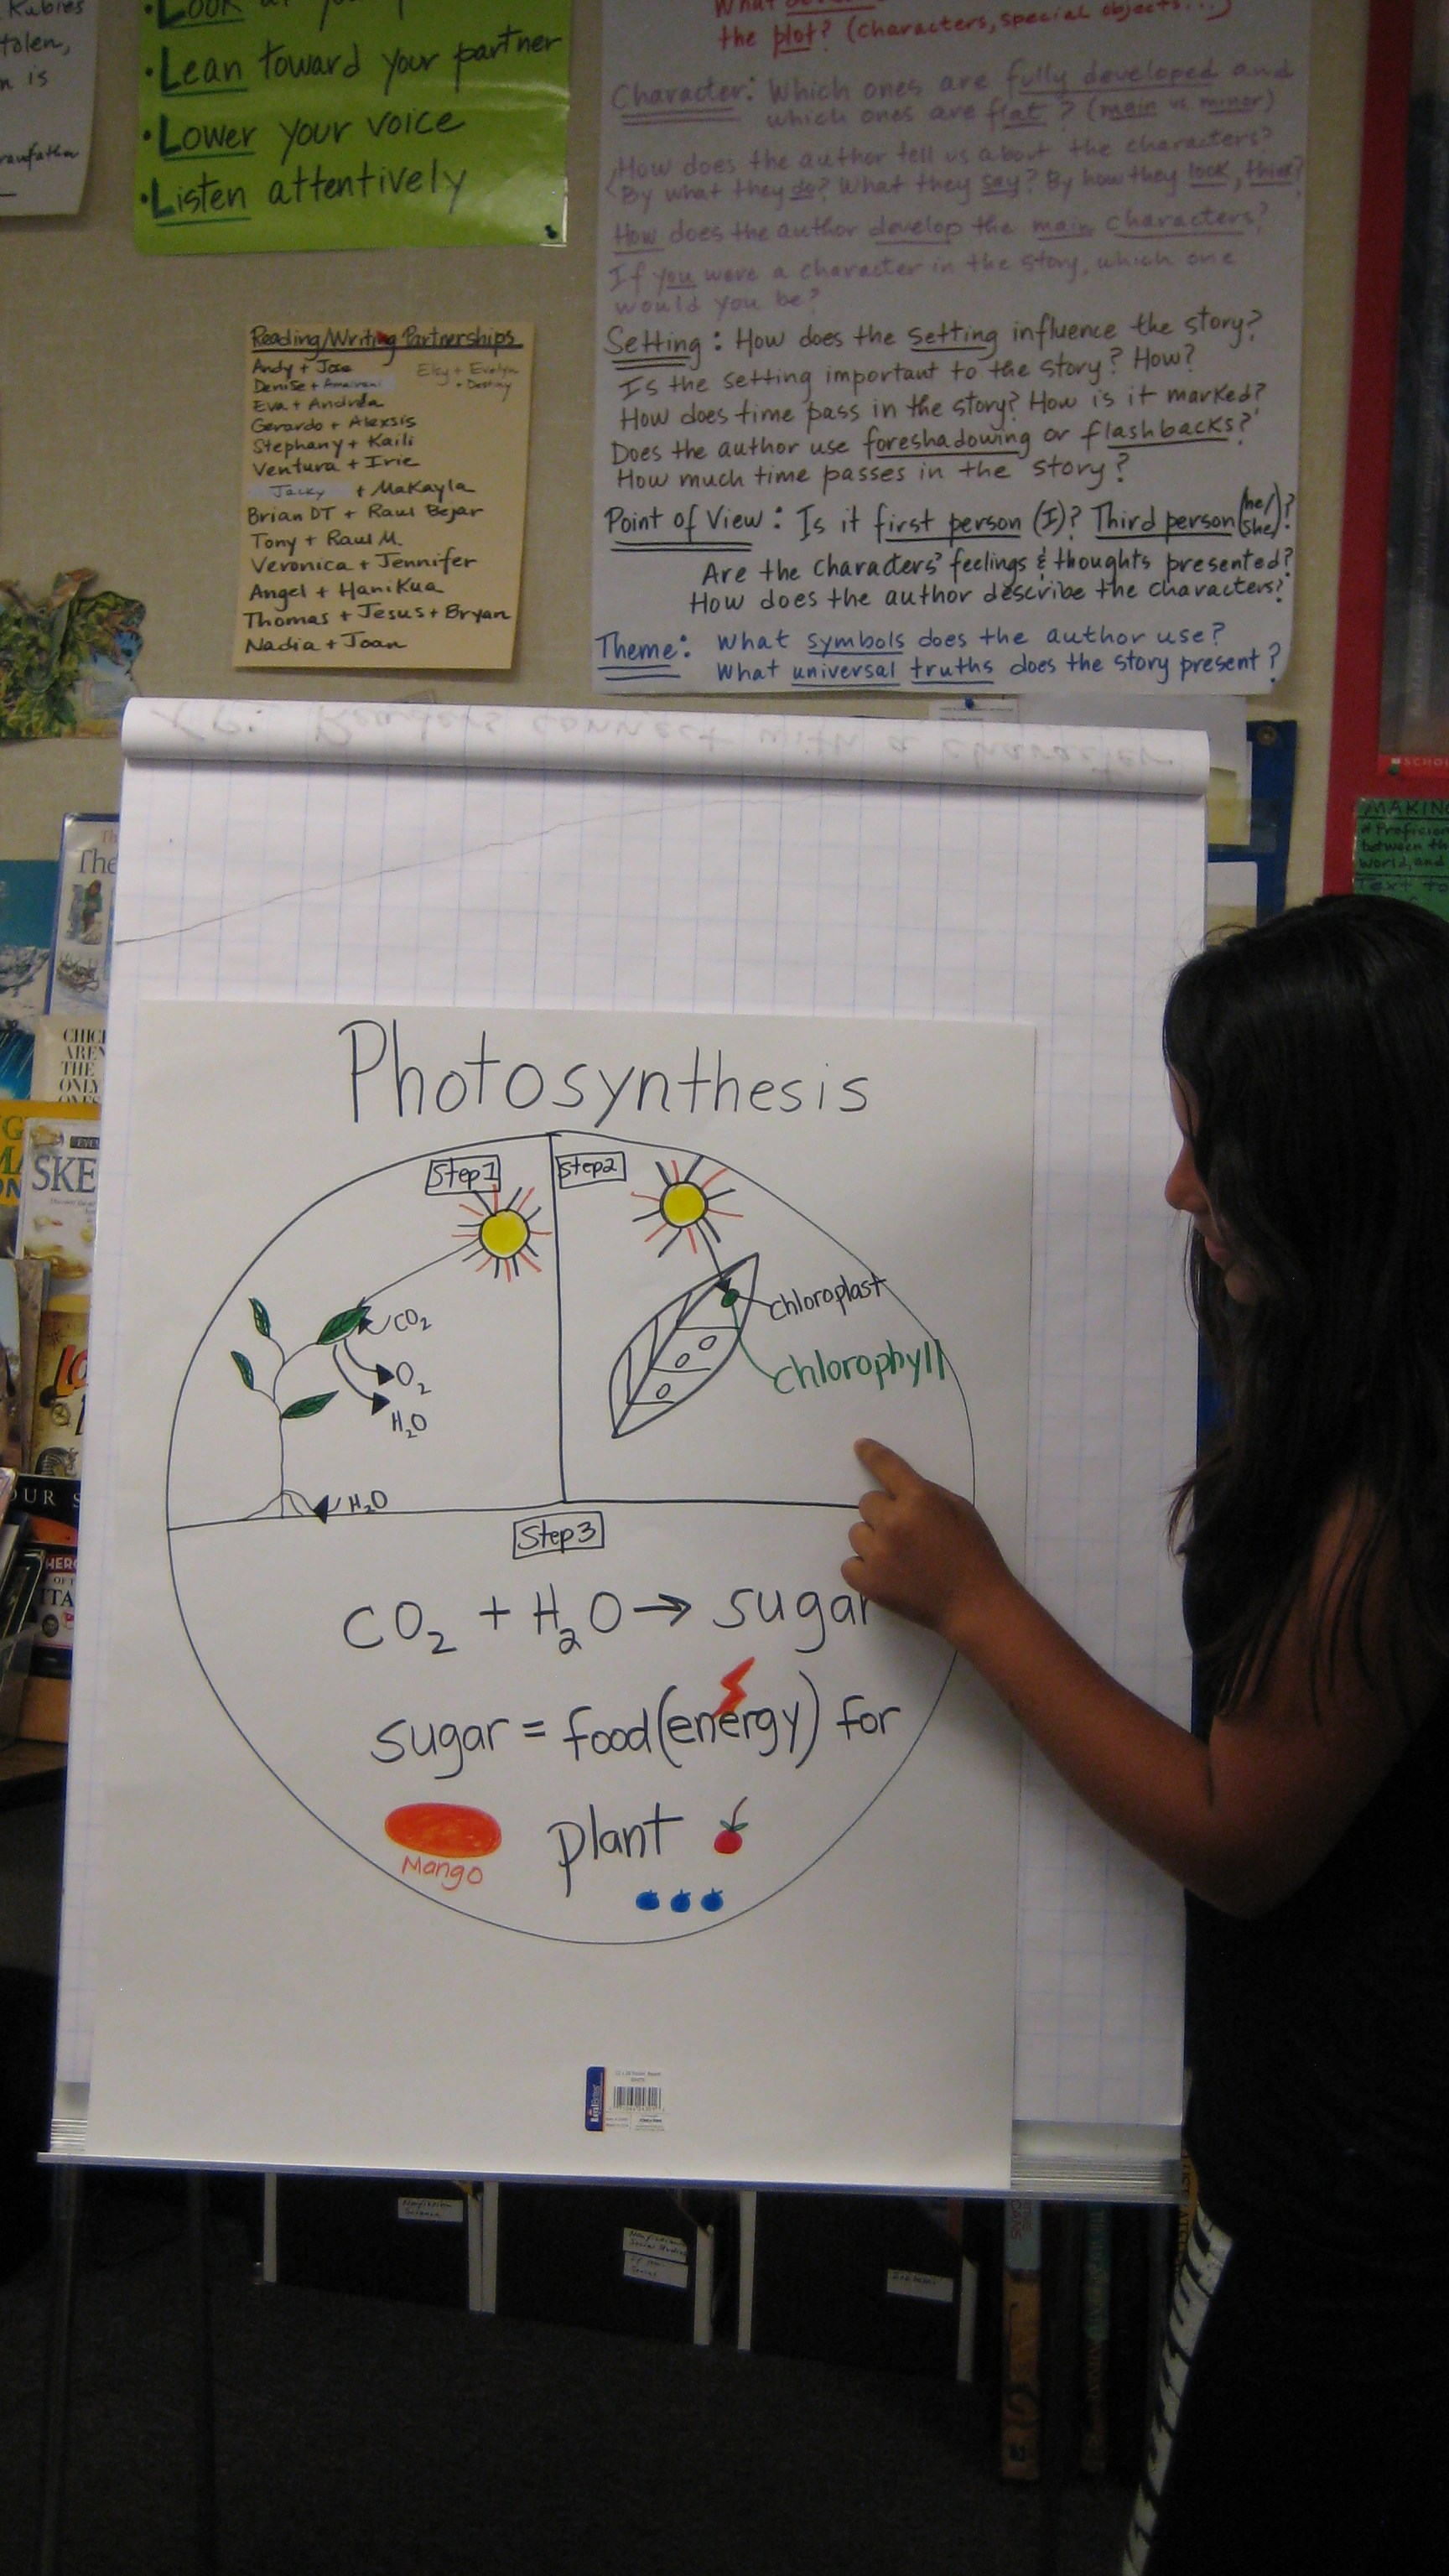 photosynthesis process diagram for 5th grade onan generator wire activity 1 mobile environmental lessons